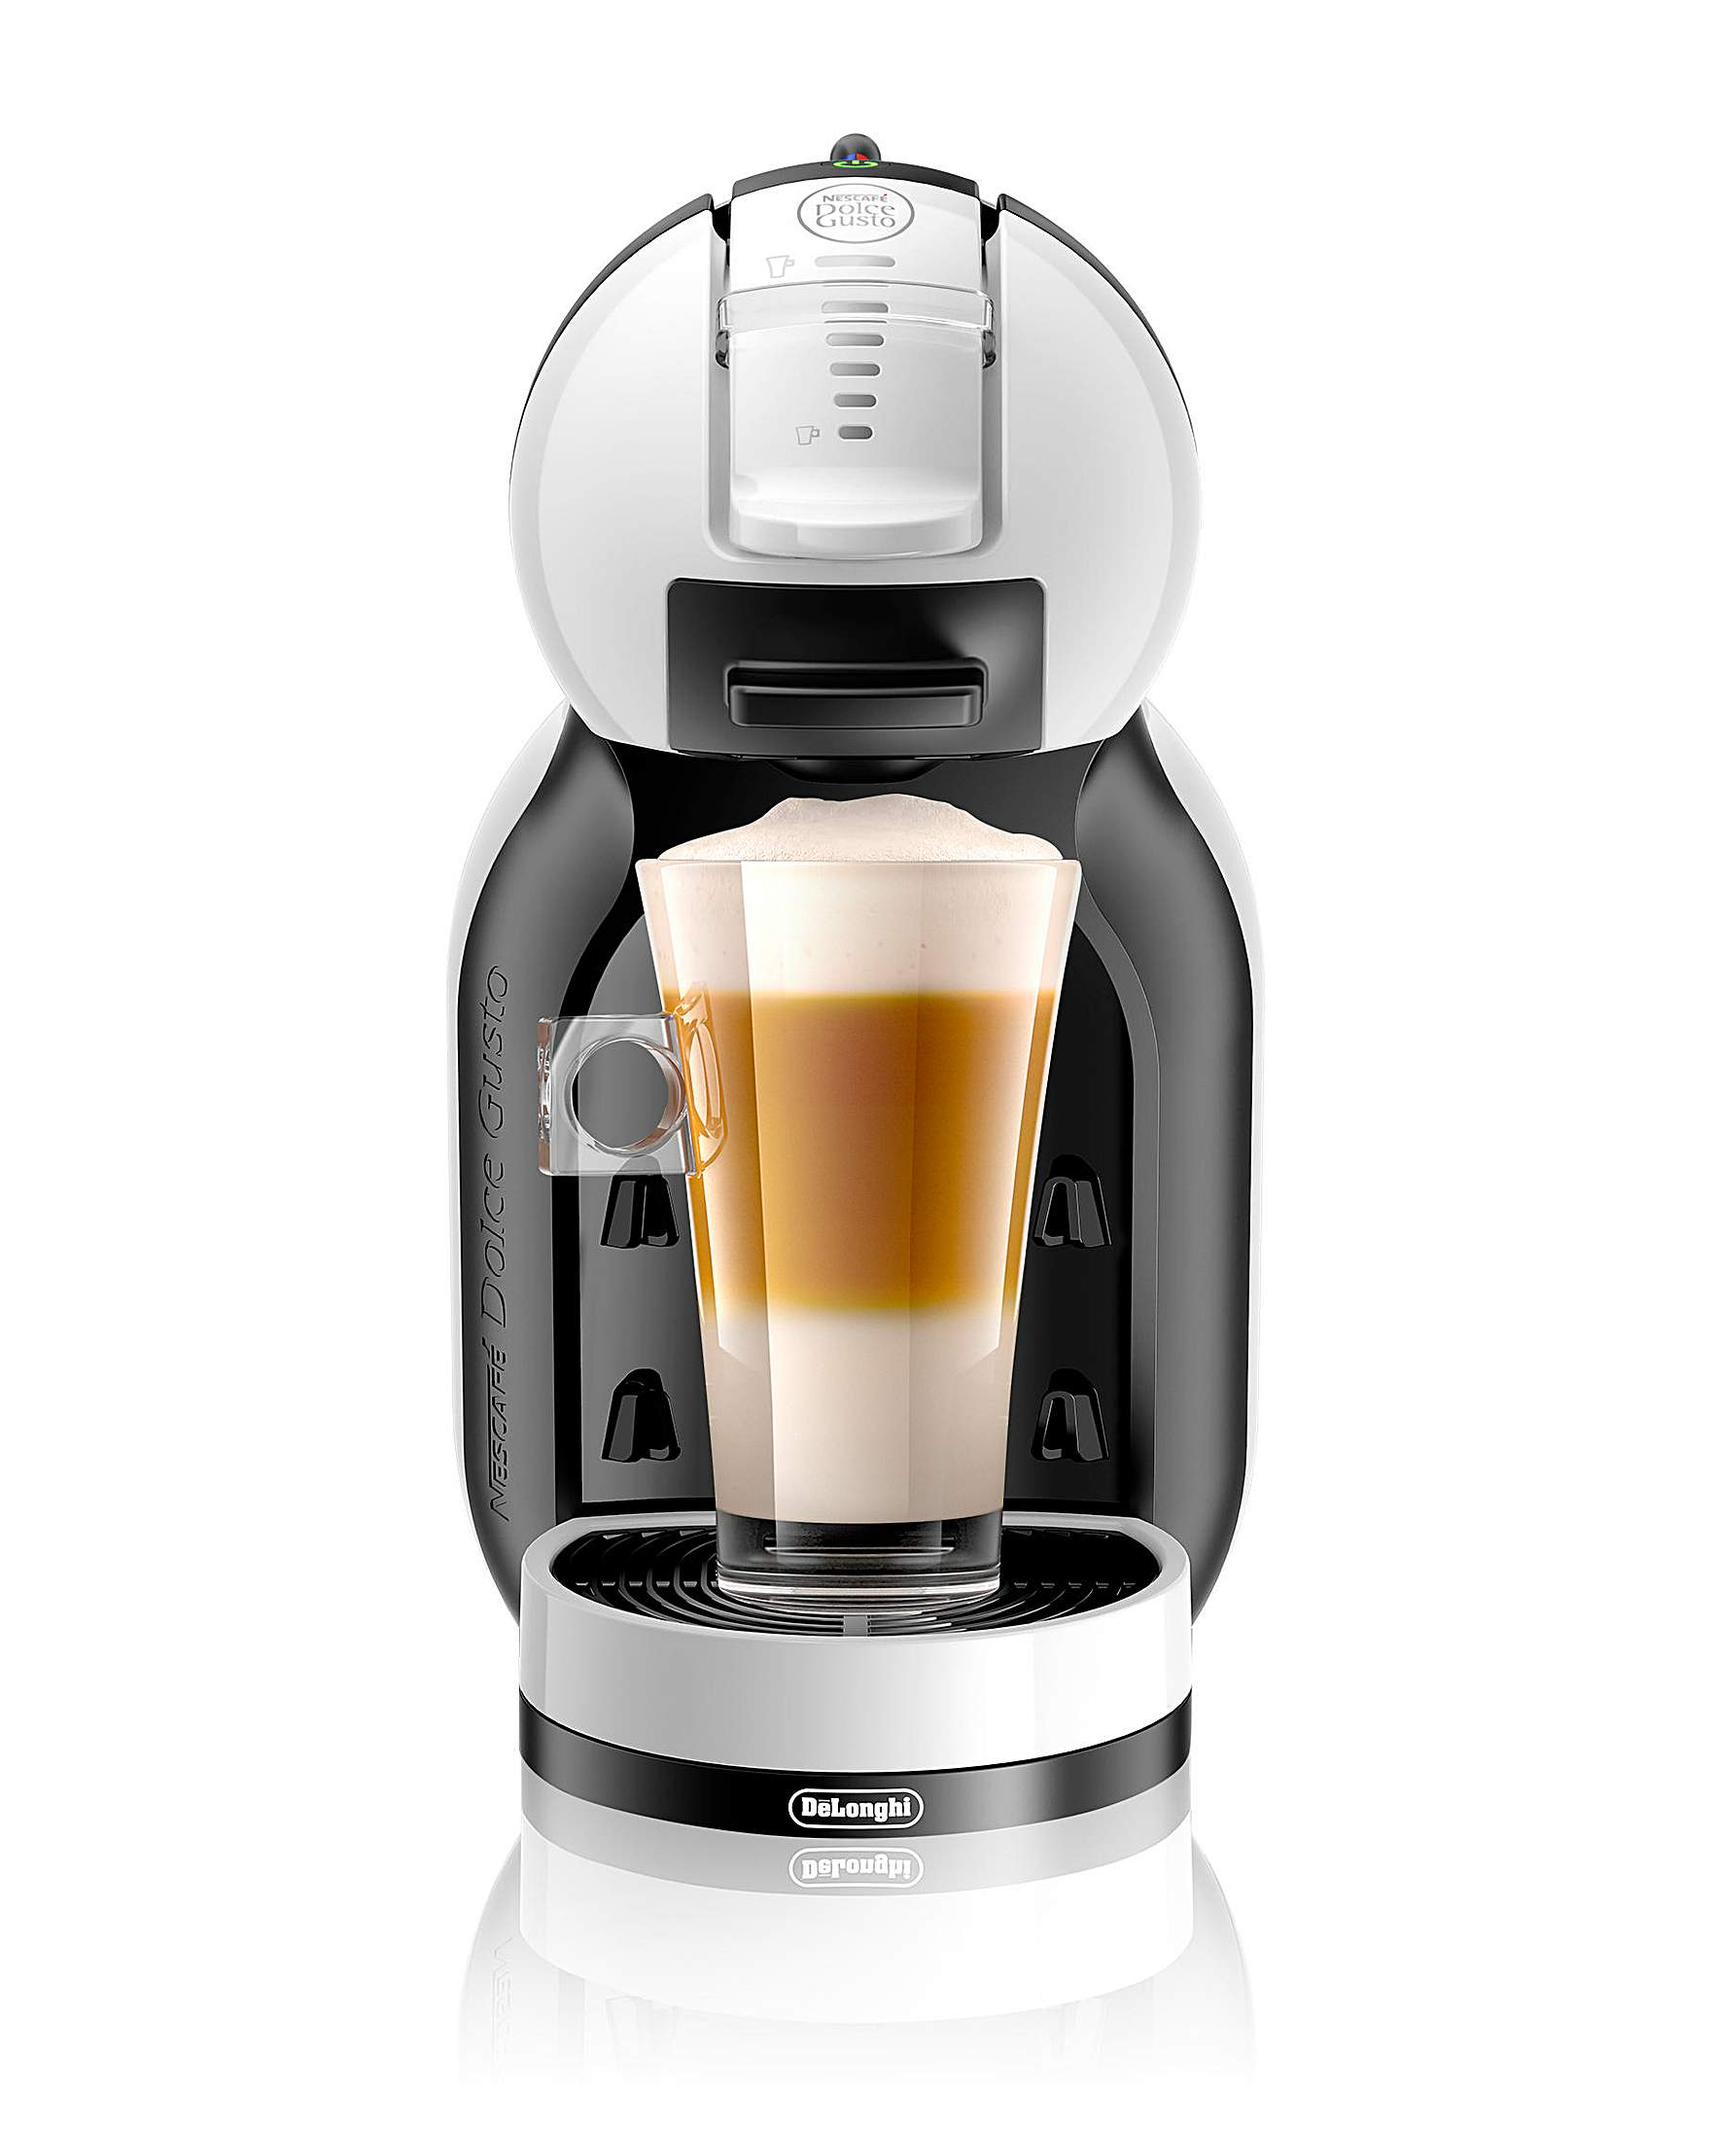 reduction dolce gusto good caf chicore dolce gusto espresso intenso capsules g with reduction. Black Bedroom Furniture Sets. Home Design Ideas